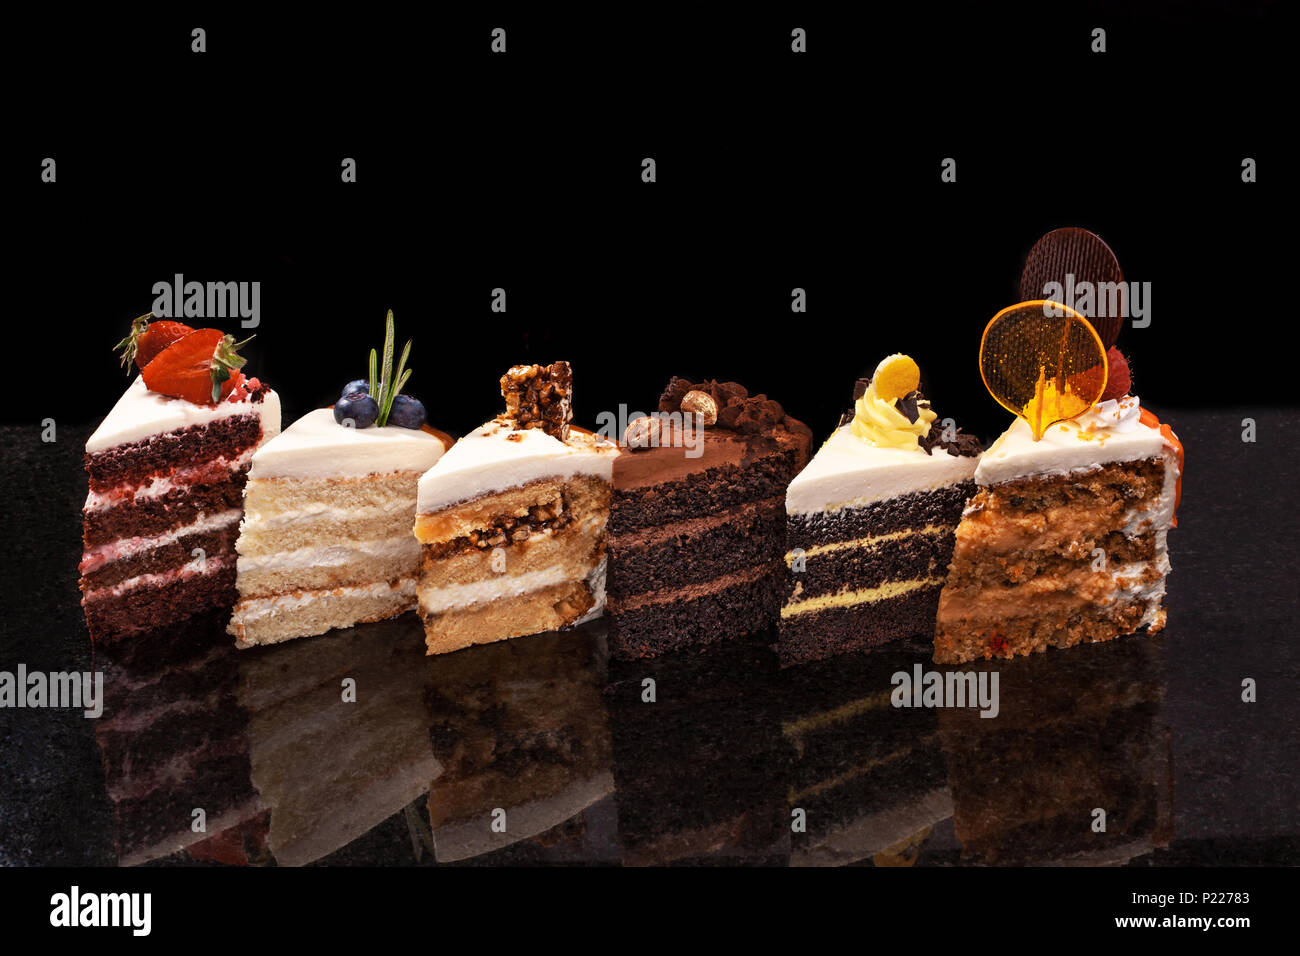 Assorted large pieces of different cakes: chocolate, raspberries, strawberries, nuts, blueberries. Pieces of cakes on a black table. - Stock Image